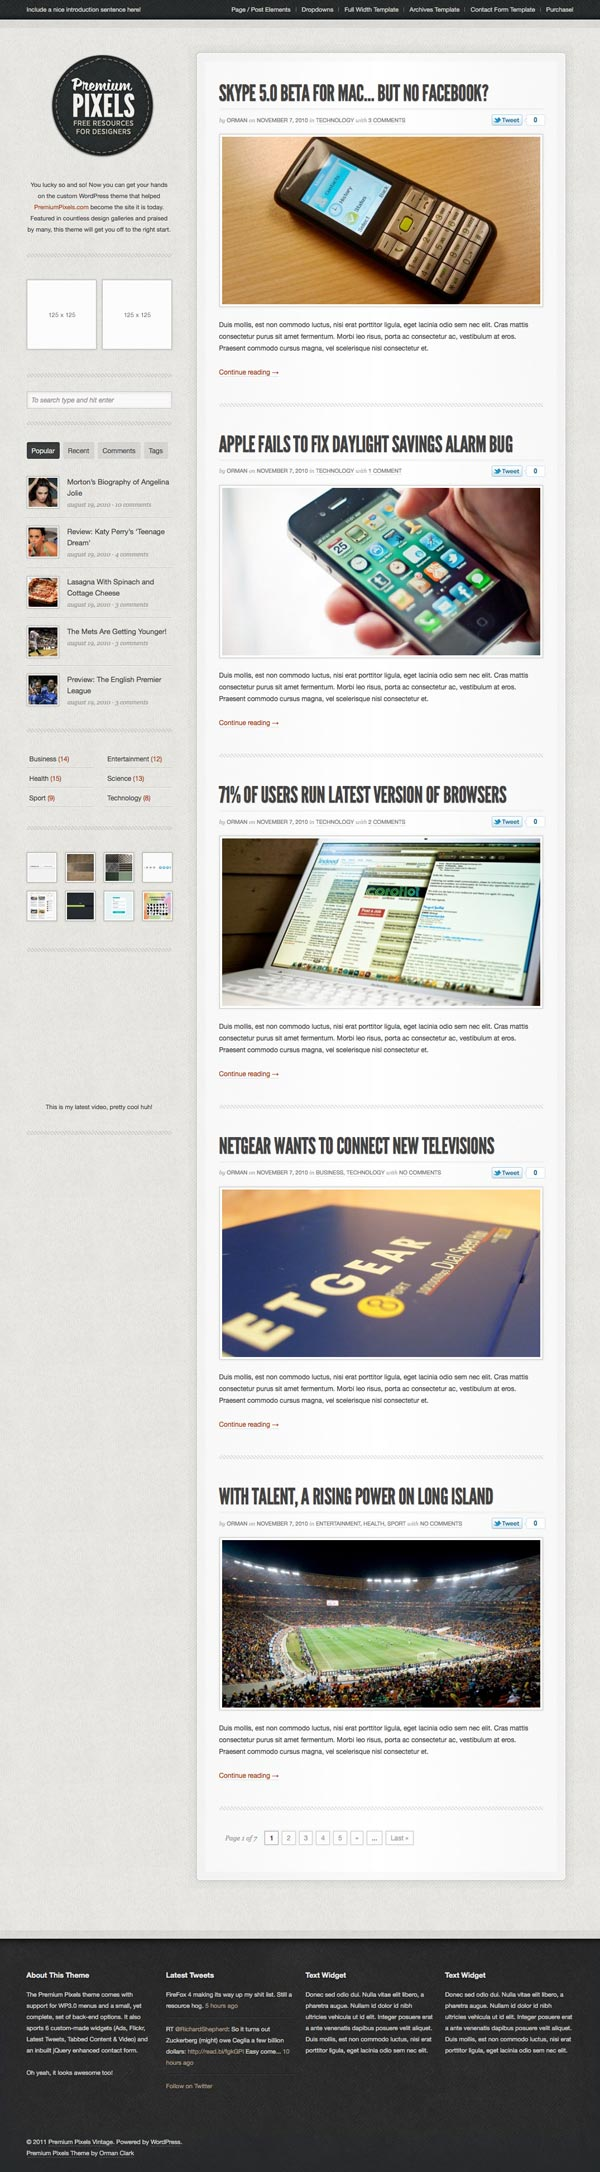 http://themeforest.net/item/premium-pixels-fancy-pants-blog-magazine-theme/232838?ref=dezup